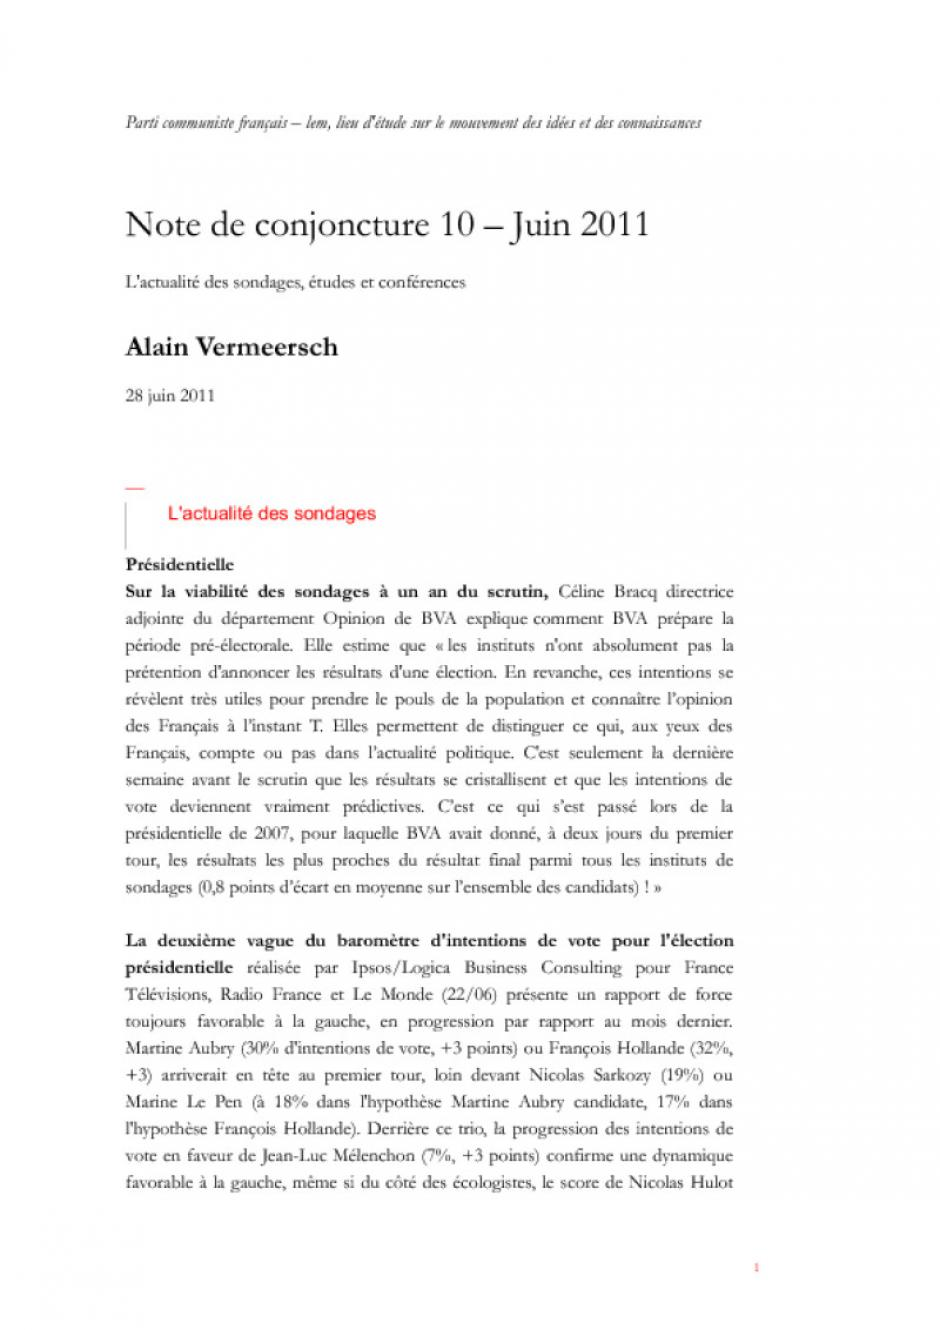 28/06/2011 - Note de conjoncture 10